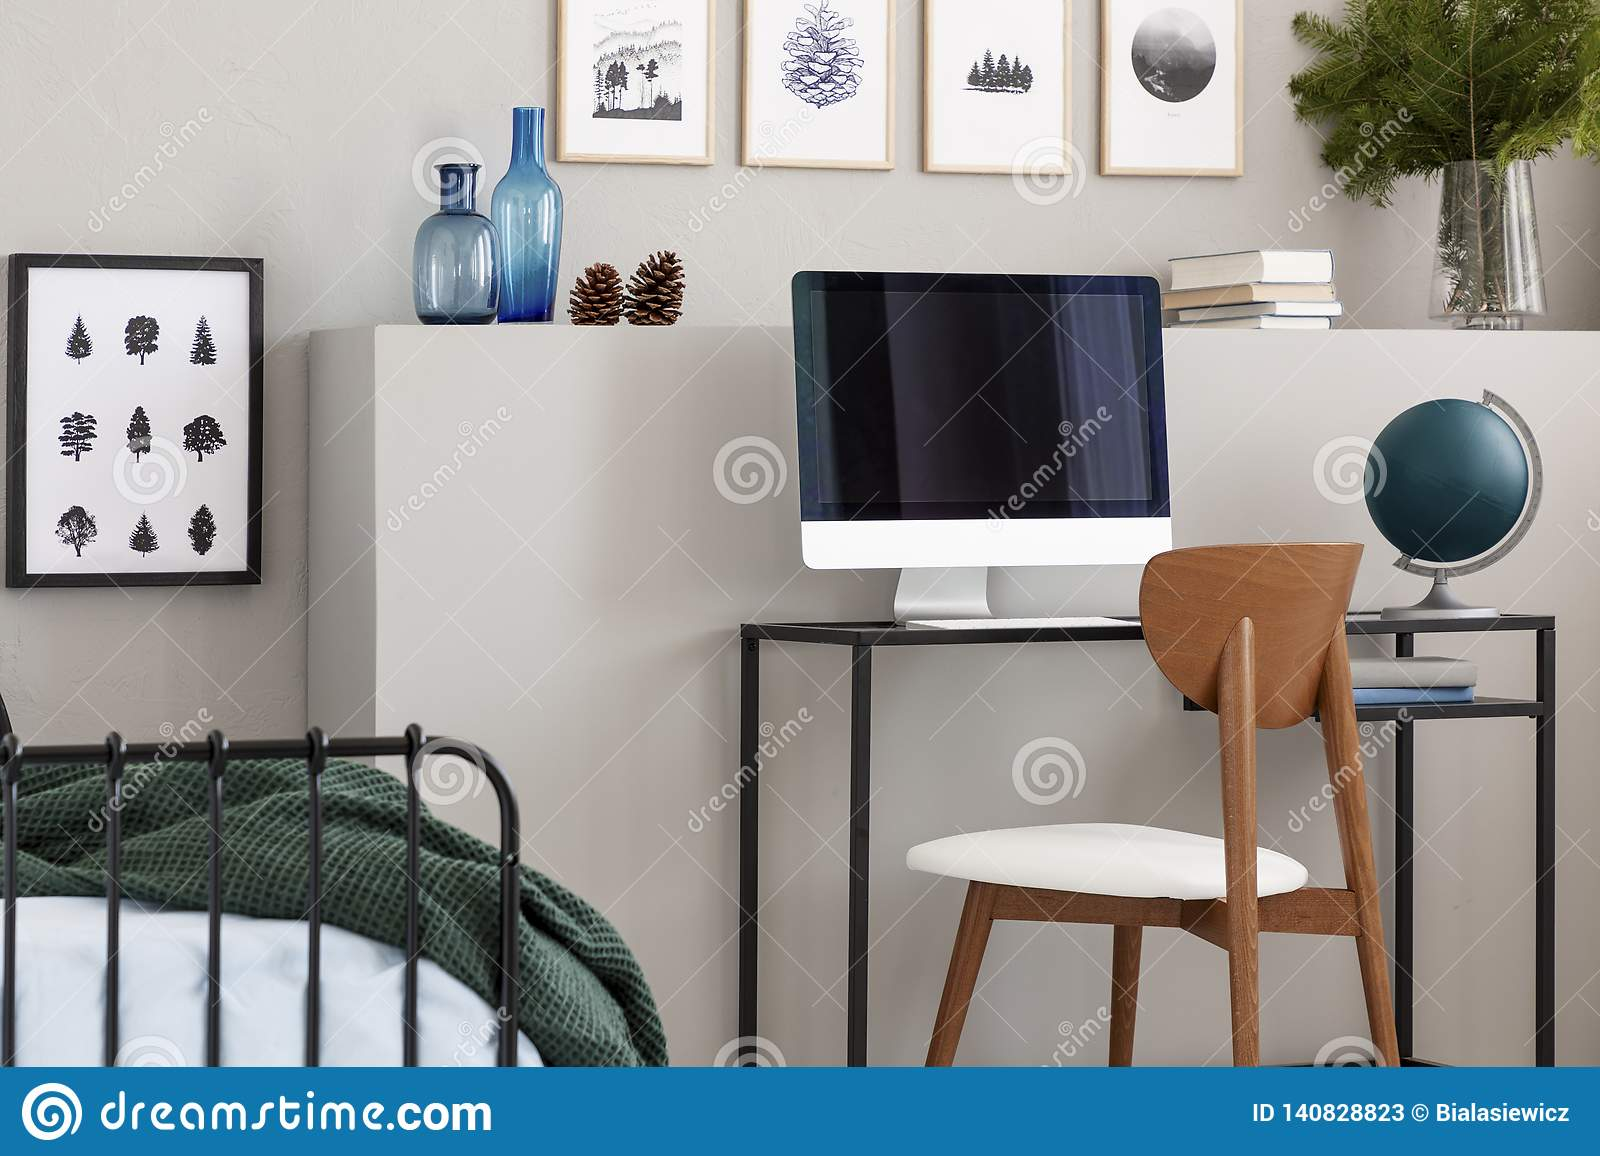 Wooden Chair With Industrial Desk With Computer And Green